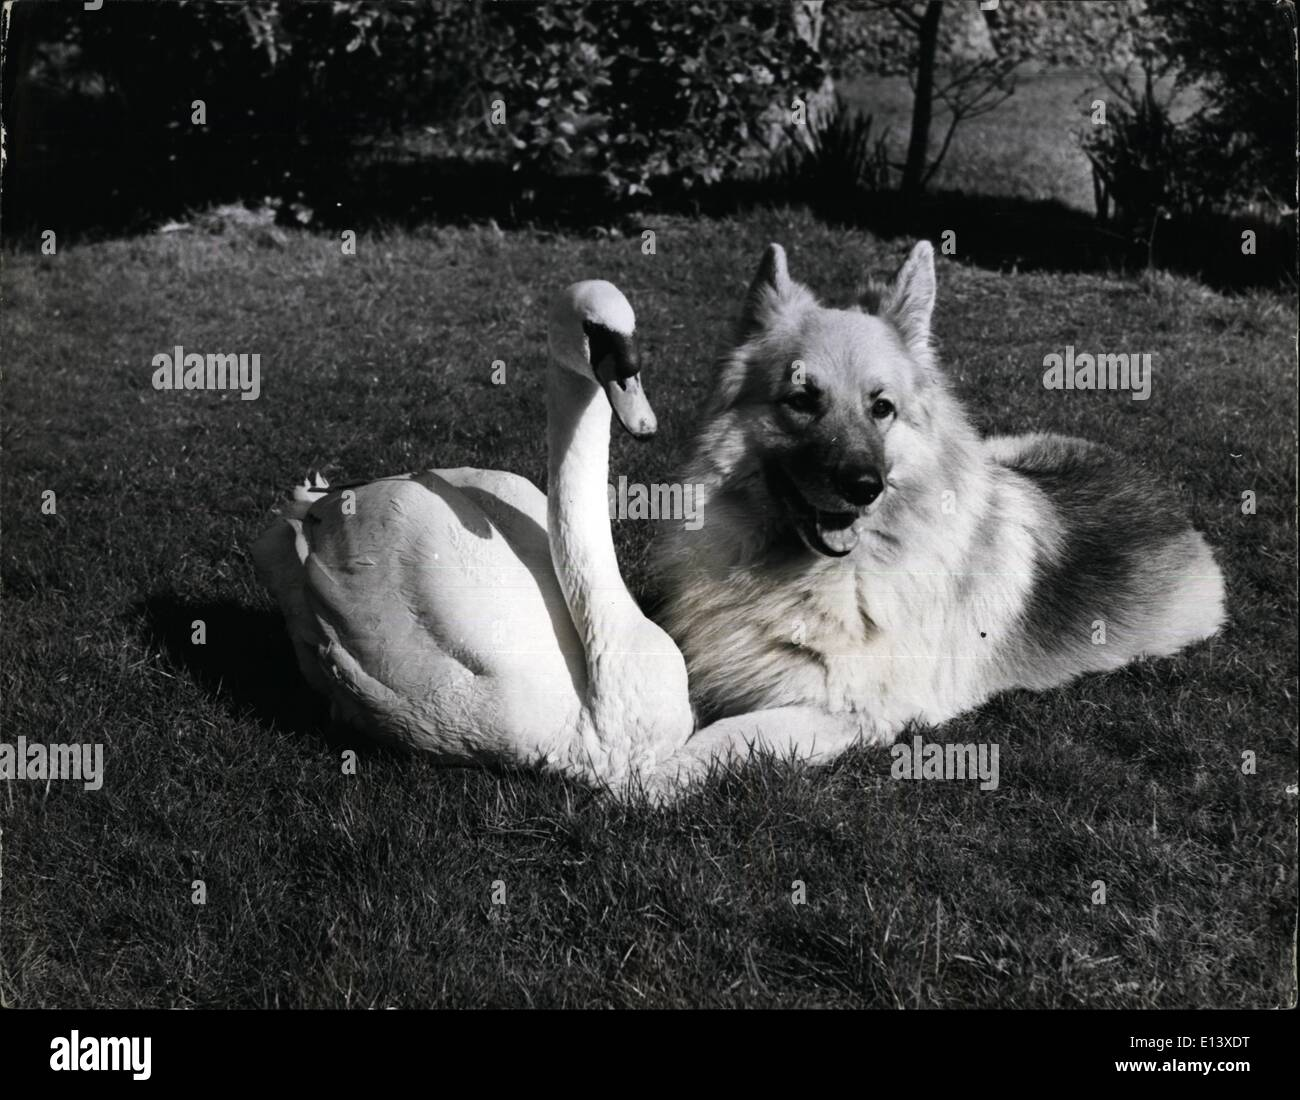 Mar. 27, 2012 - In normal circumstances any dog which gets within pecking range of swan is asking for trouble. But Pavlova the swan and Pasha the Alsatian have been friends since both were very young. Pavlova, as a tiny cygnet, was found by an R.S.P.C.A. inspector floundering in the water, She had apparently fallen off her mother's back, and had been abandoned. He took her to a bir-0care expert, Brenda Marsaulyt, who at her home in Budleigh Road, Exmouth, Devon, looks after 150 rescued, injured, or abandoned birds. At that time Pasha was only a pup - Stock Image